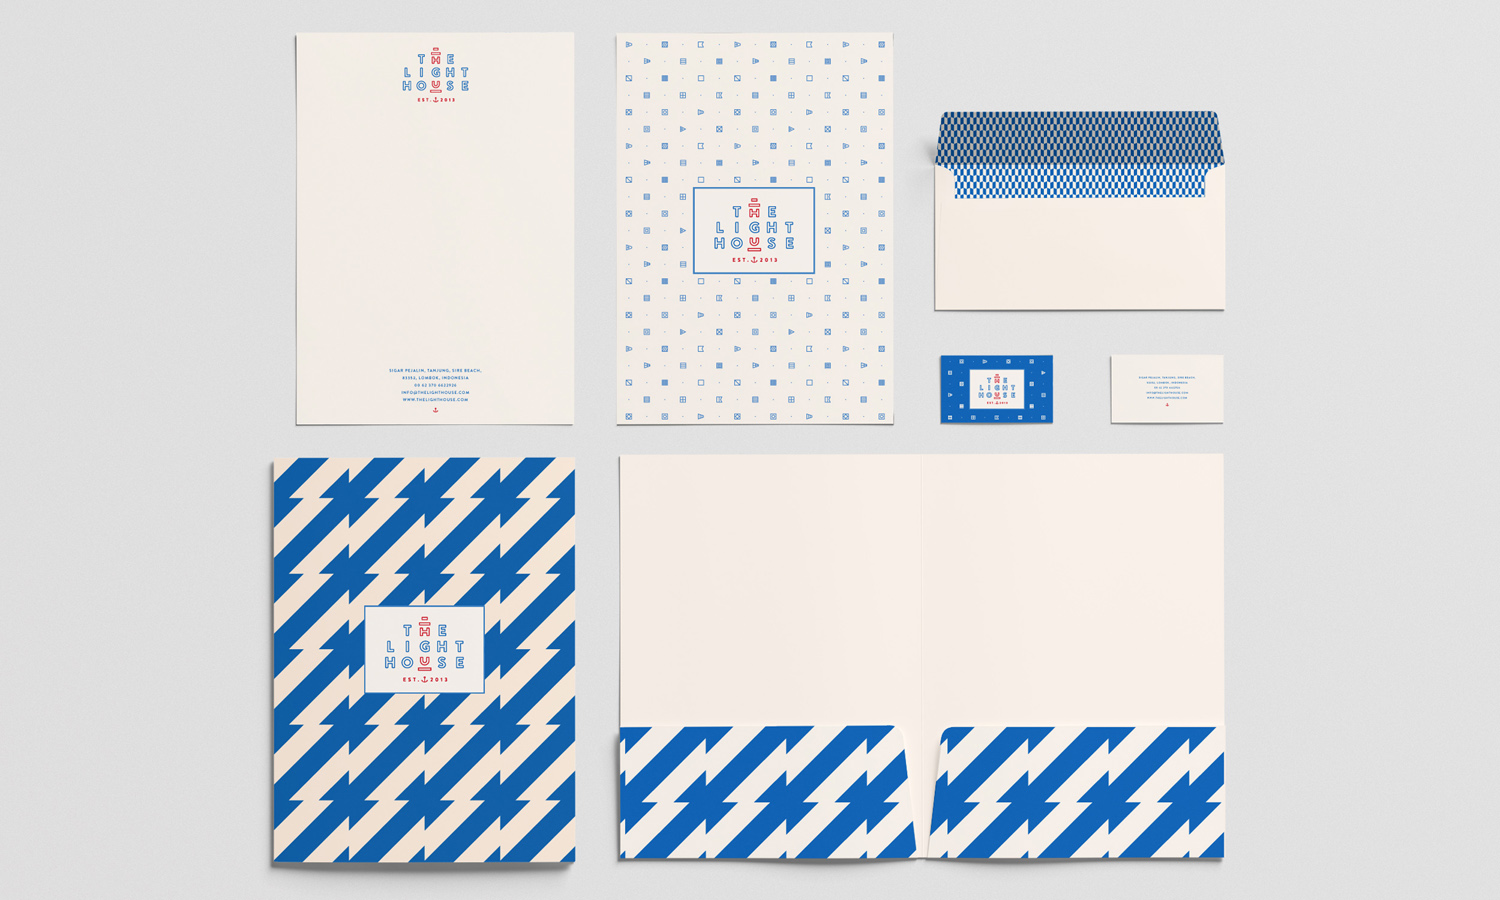 thelighthouse_02_stationery